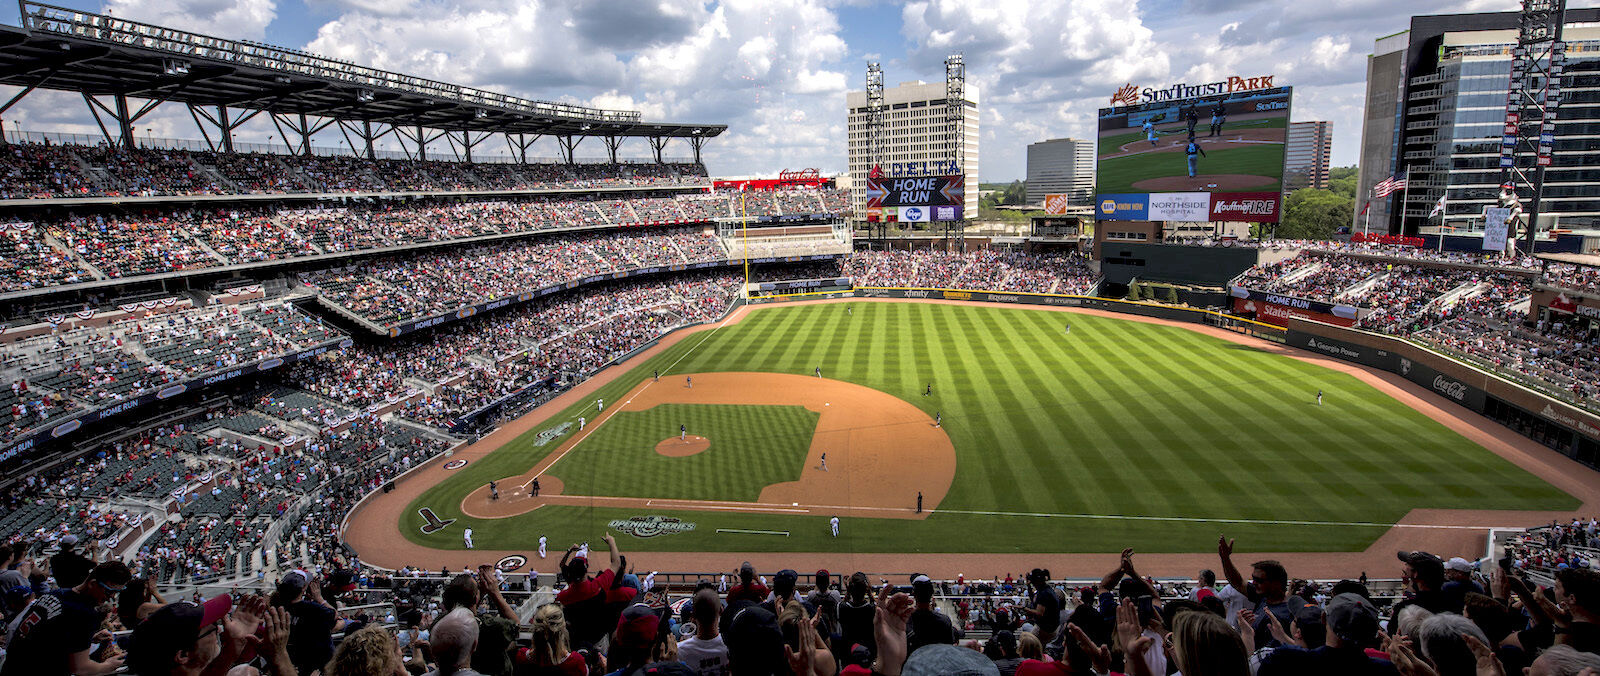 New York Mets at Atlanta Braves Tickets (Ender Inciarte Bobblehead)